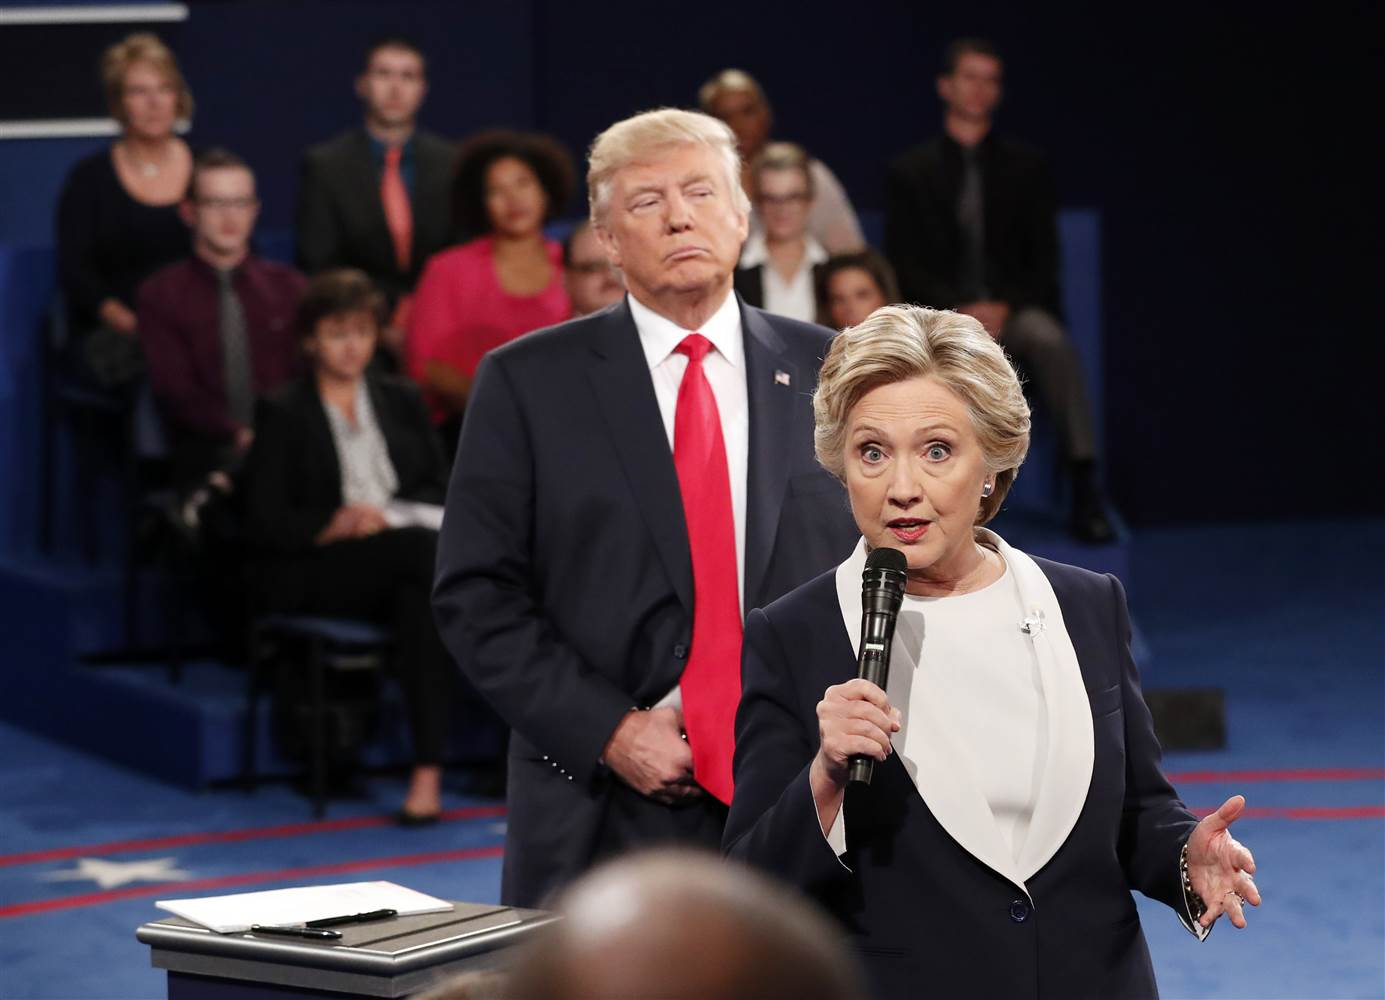 Clinton and Trump in their second debate